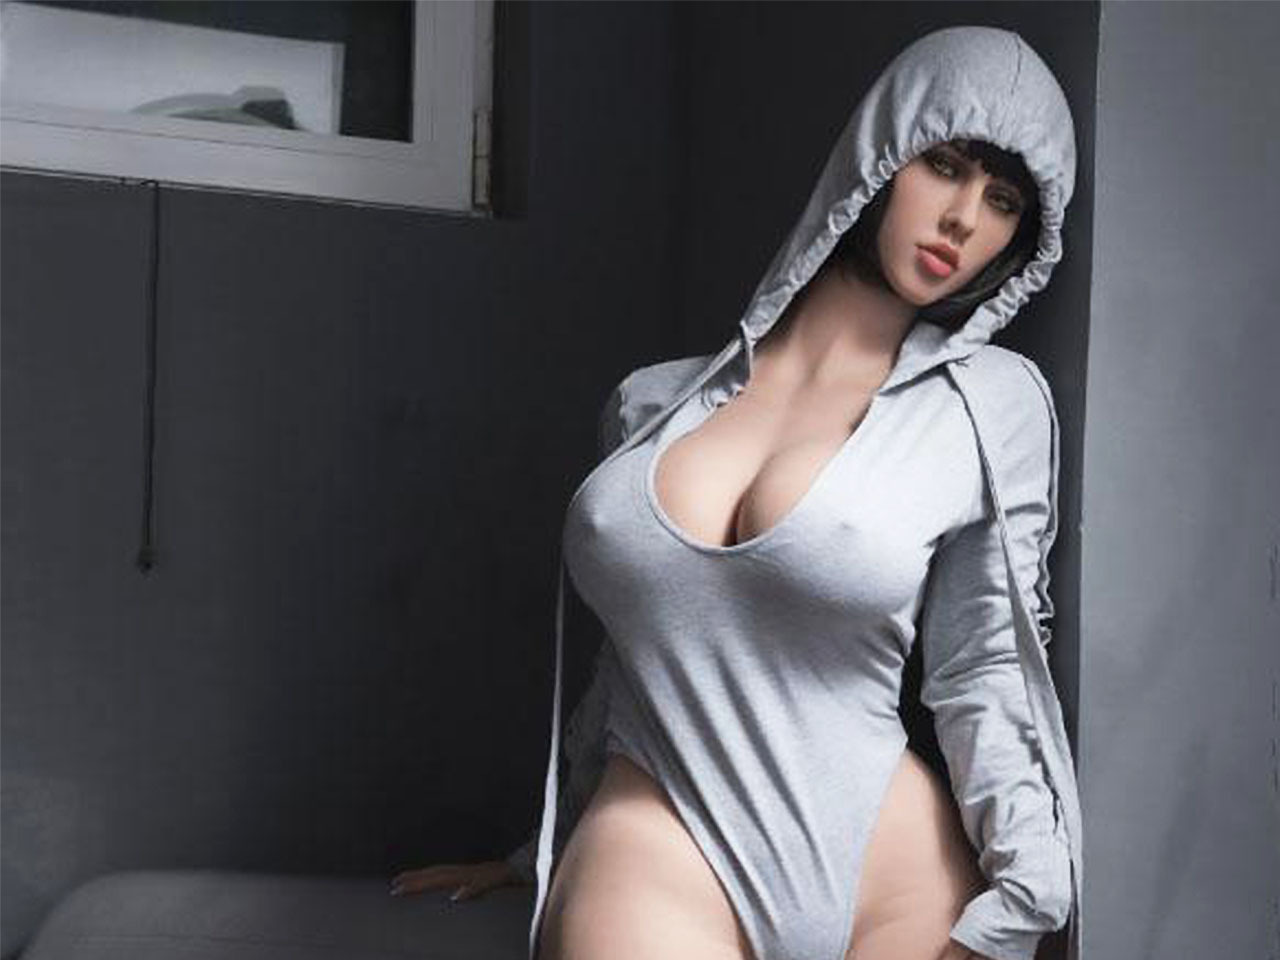 Could sex dolls replace your gf? (NSFW)